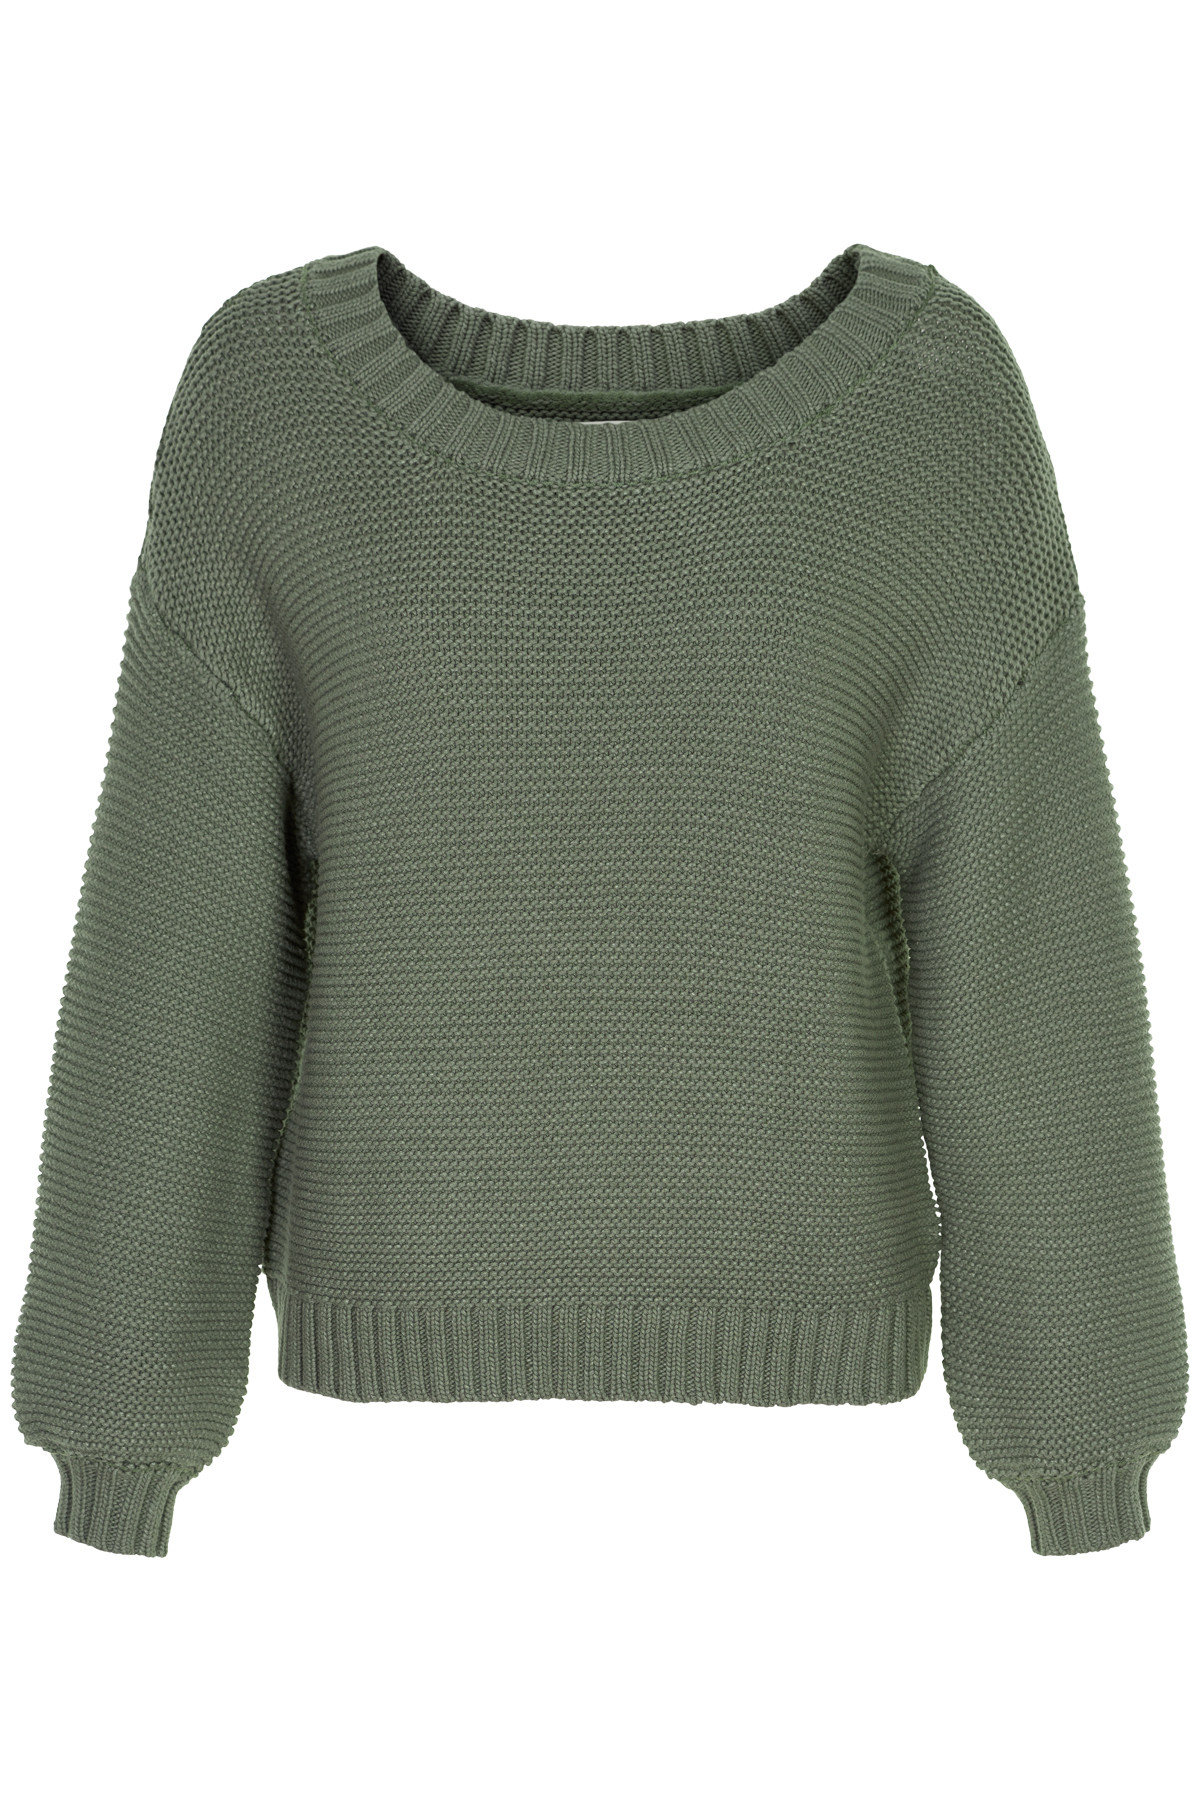 Image of   AND LESS RAIMONDO PULLOVER 5219206 (Castor Green, XS)